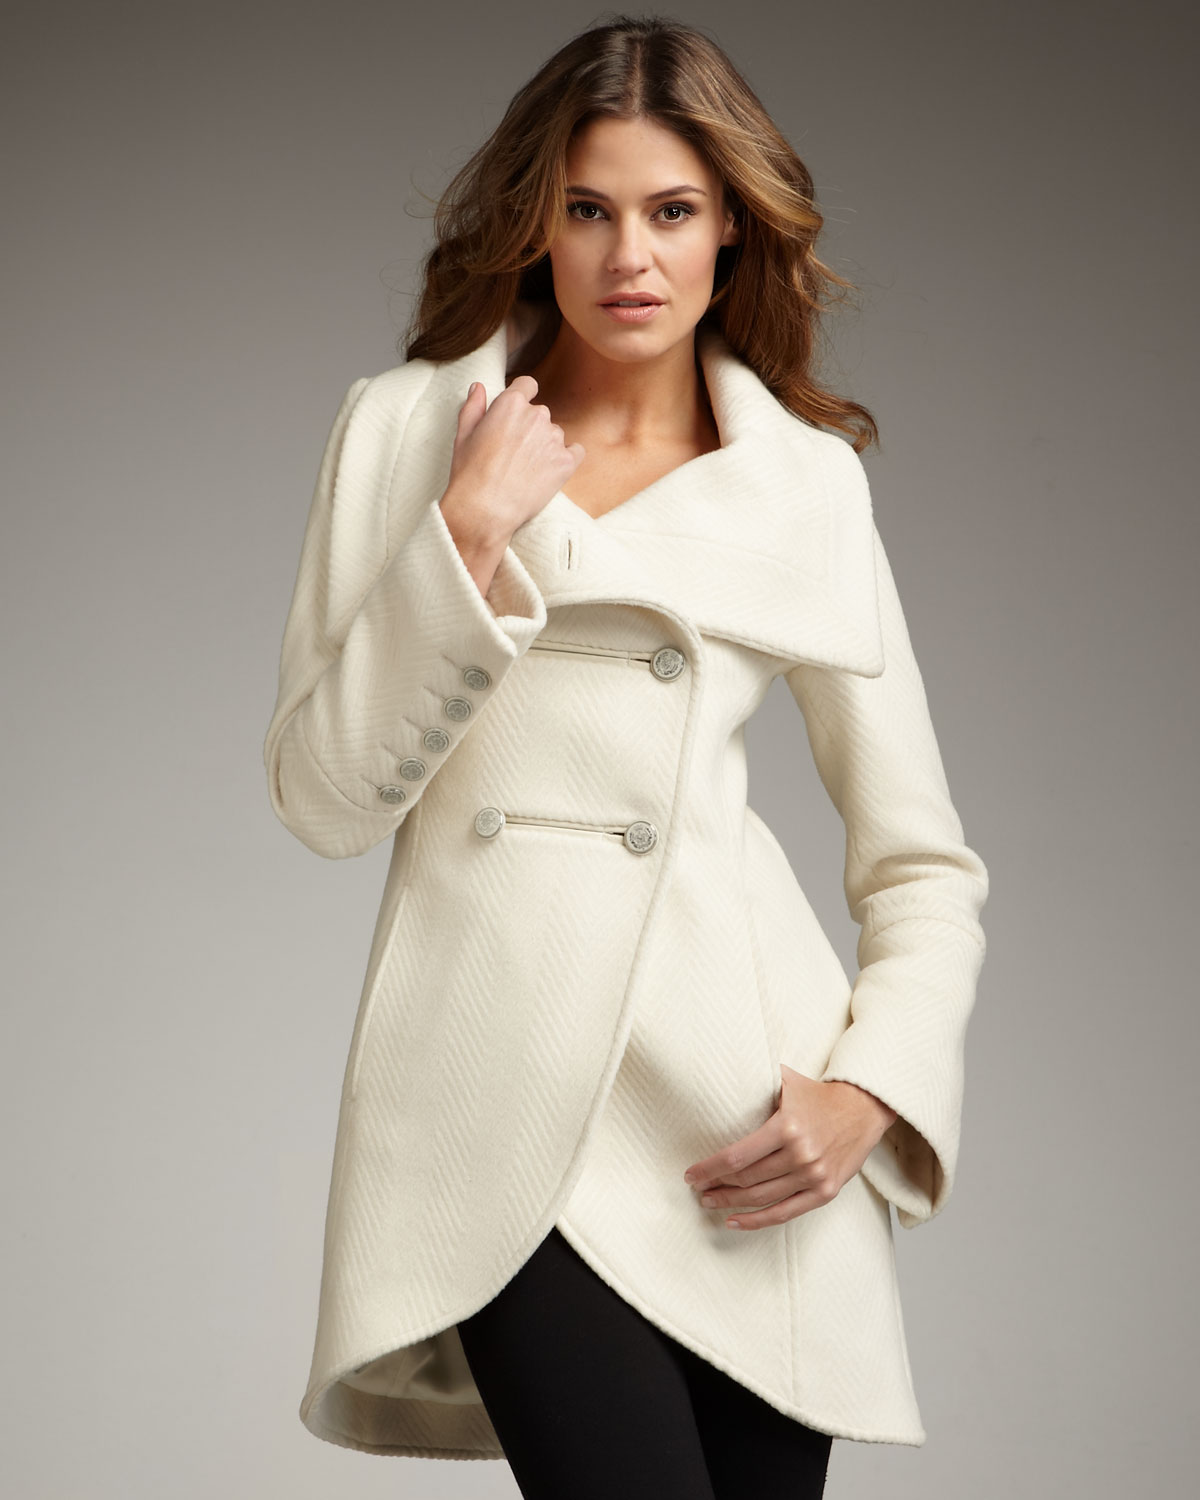 7 Colors Women Clothing Autumn Fall White Wool Coat Loose Coat Outwear Fashional Classic Formal Office Maxi. Dress Custom Size CHARMINGDIY. 5 out of 5 stars () $ White coat, Winter coat, Wool Coat, womens coat, white wool coat, wool coat womens, winter wool coat, white womens coat, midi coat C YL1dress. 5 out of 5 stars.